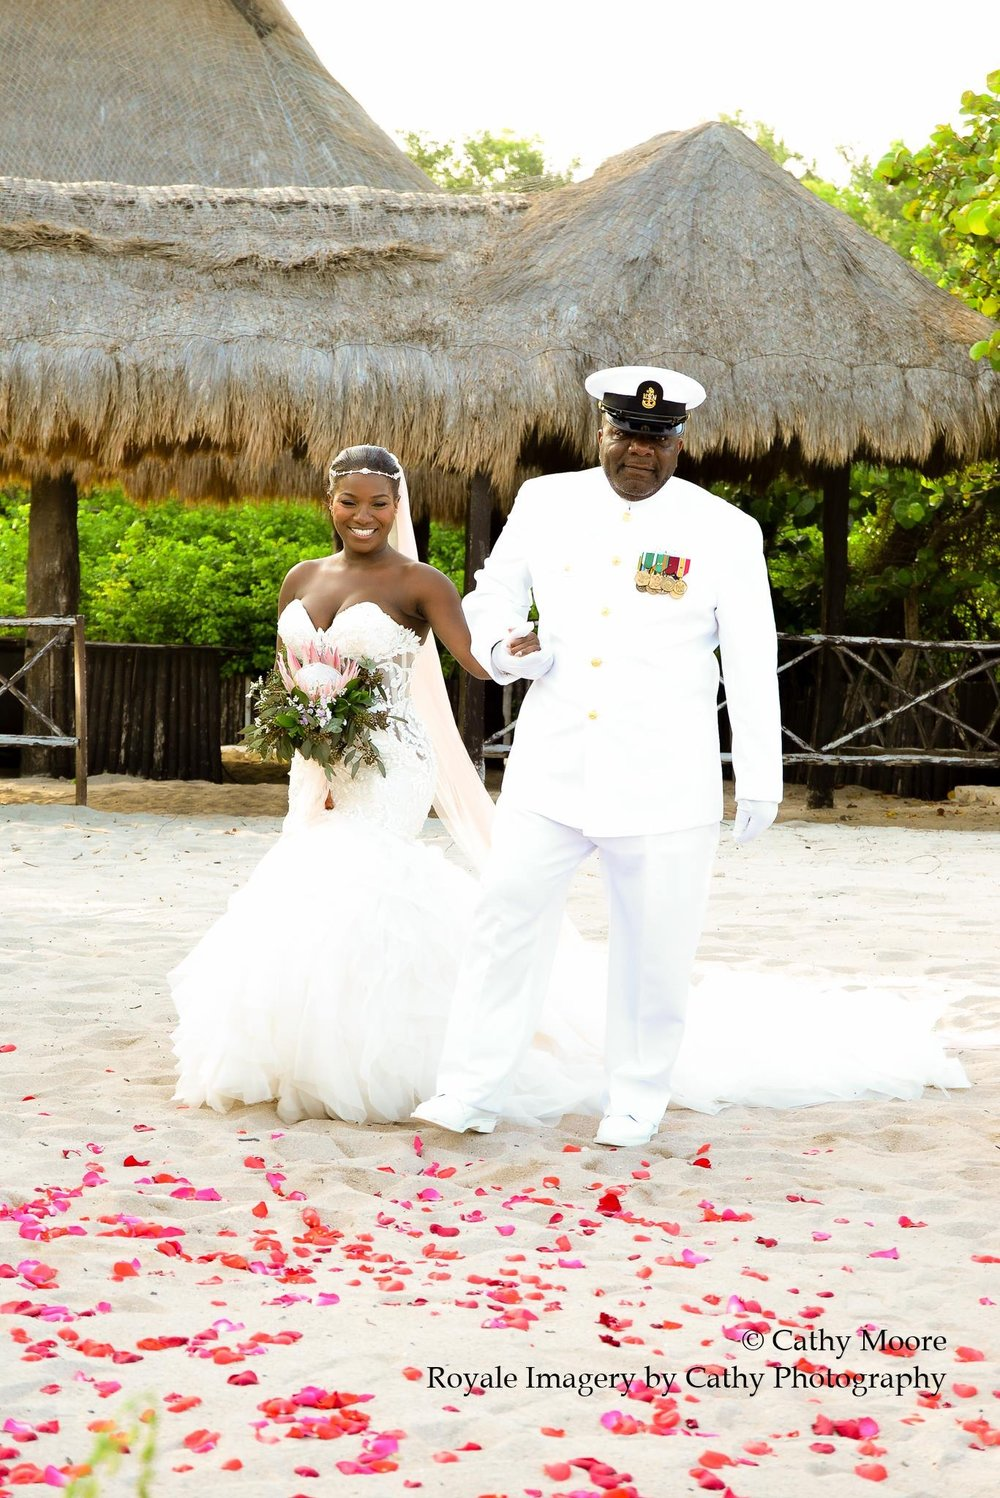 Black Destination Bride - BlackDesti Wedding Countdown Journal - Bridefriends Podcast - 0 Playa del Carmen Mexico - Blue Venado - Shenko Photography - Eve of Milady 1560 - Dad Navy Chief Uniform2.JPG